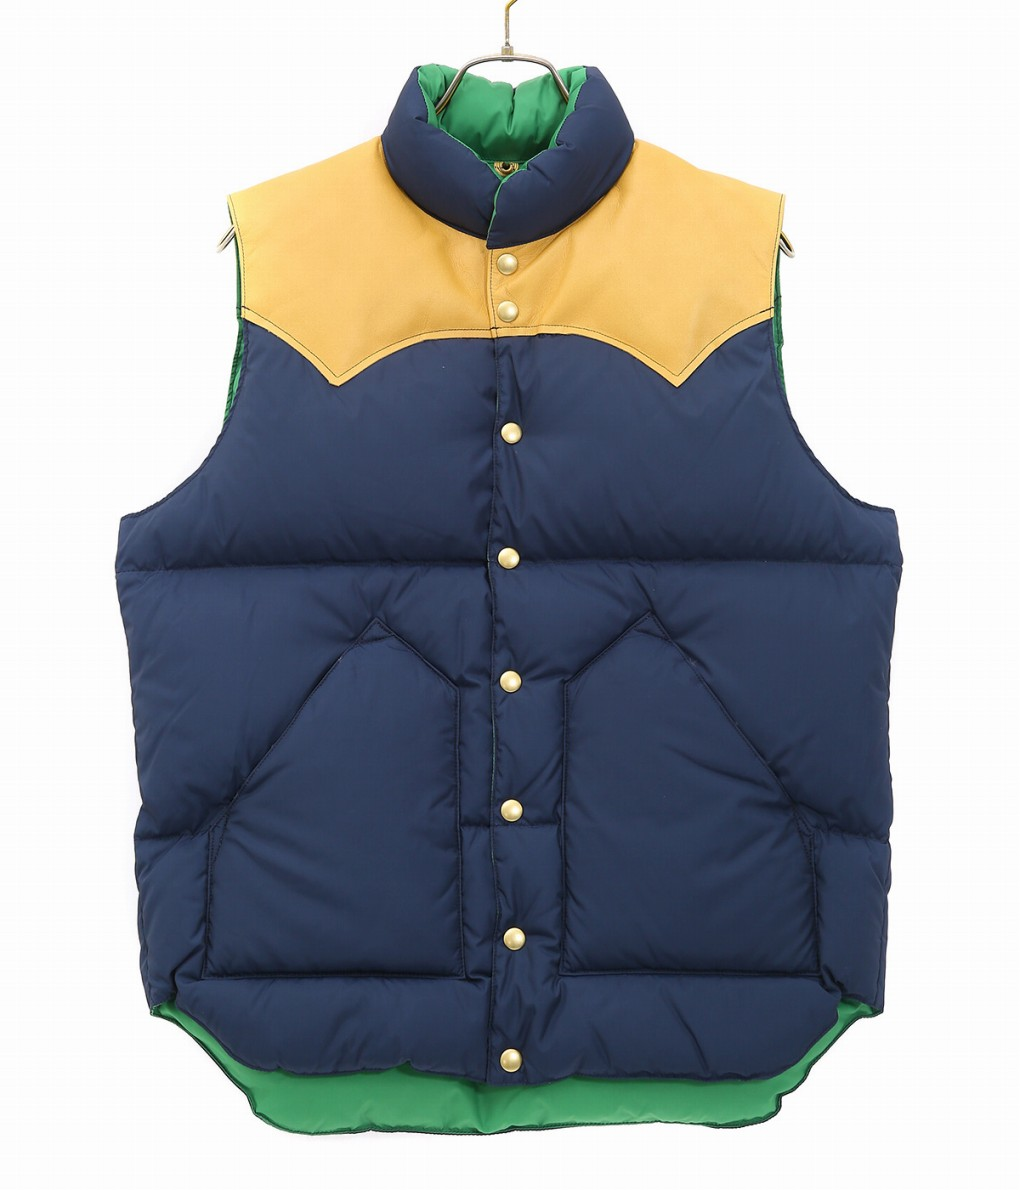 ROCKY MOUNTAIN FEATHER BED / ロッキーマウンテンフェザーベッド : DOWN VEST : ダウン ロッキー ロッキーマウンテンダウン ダウンベスト メンズ : 200-192-01 【STD】